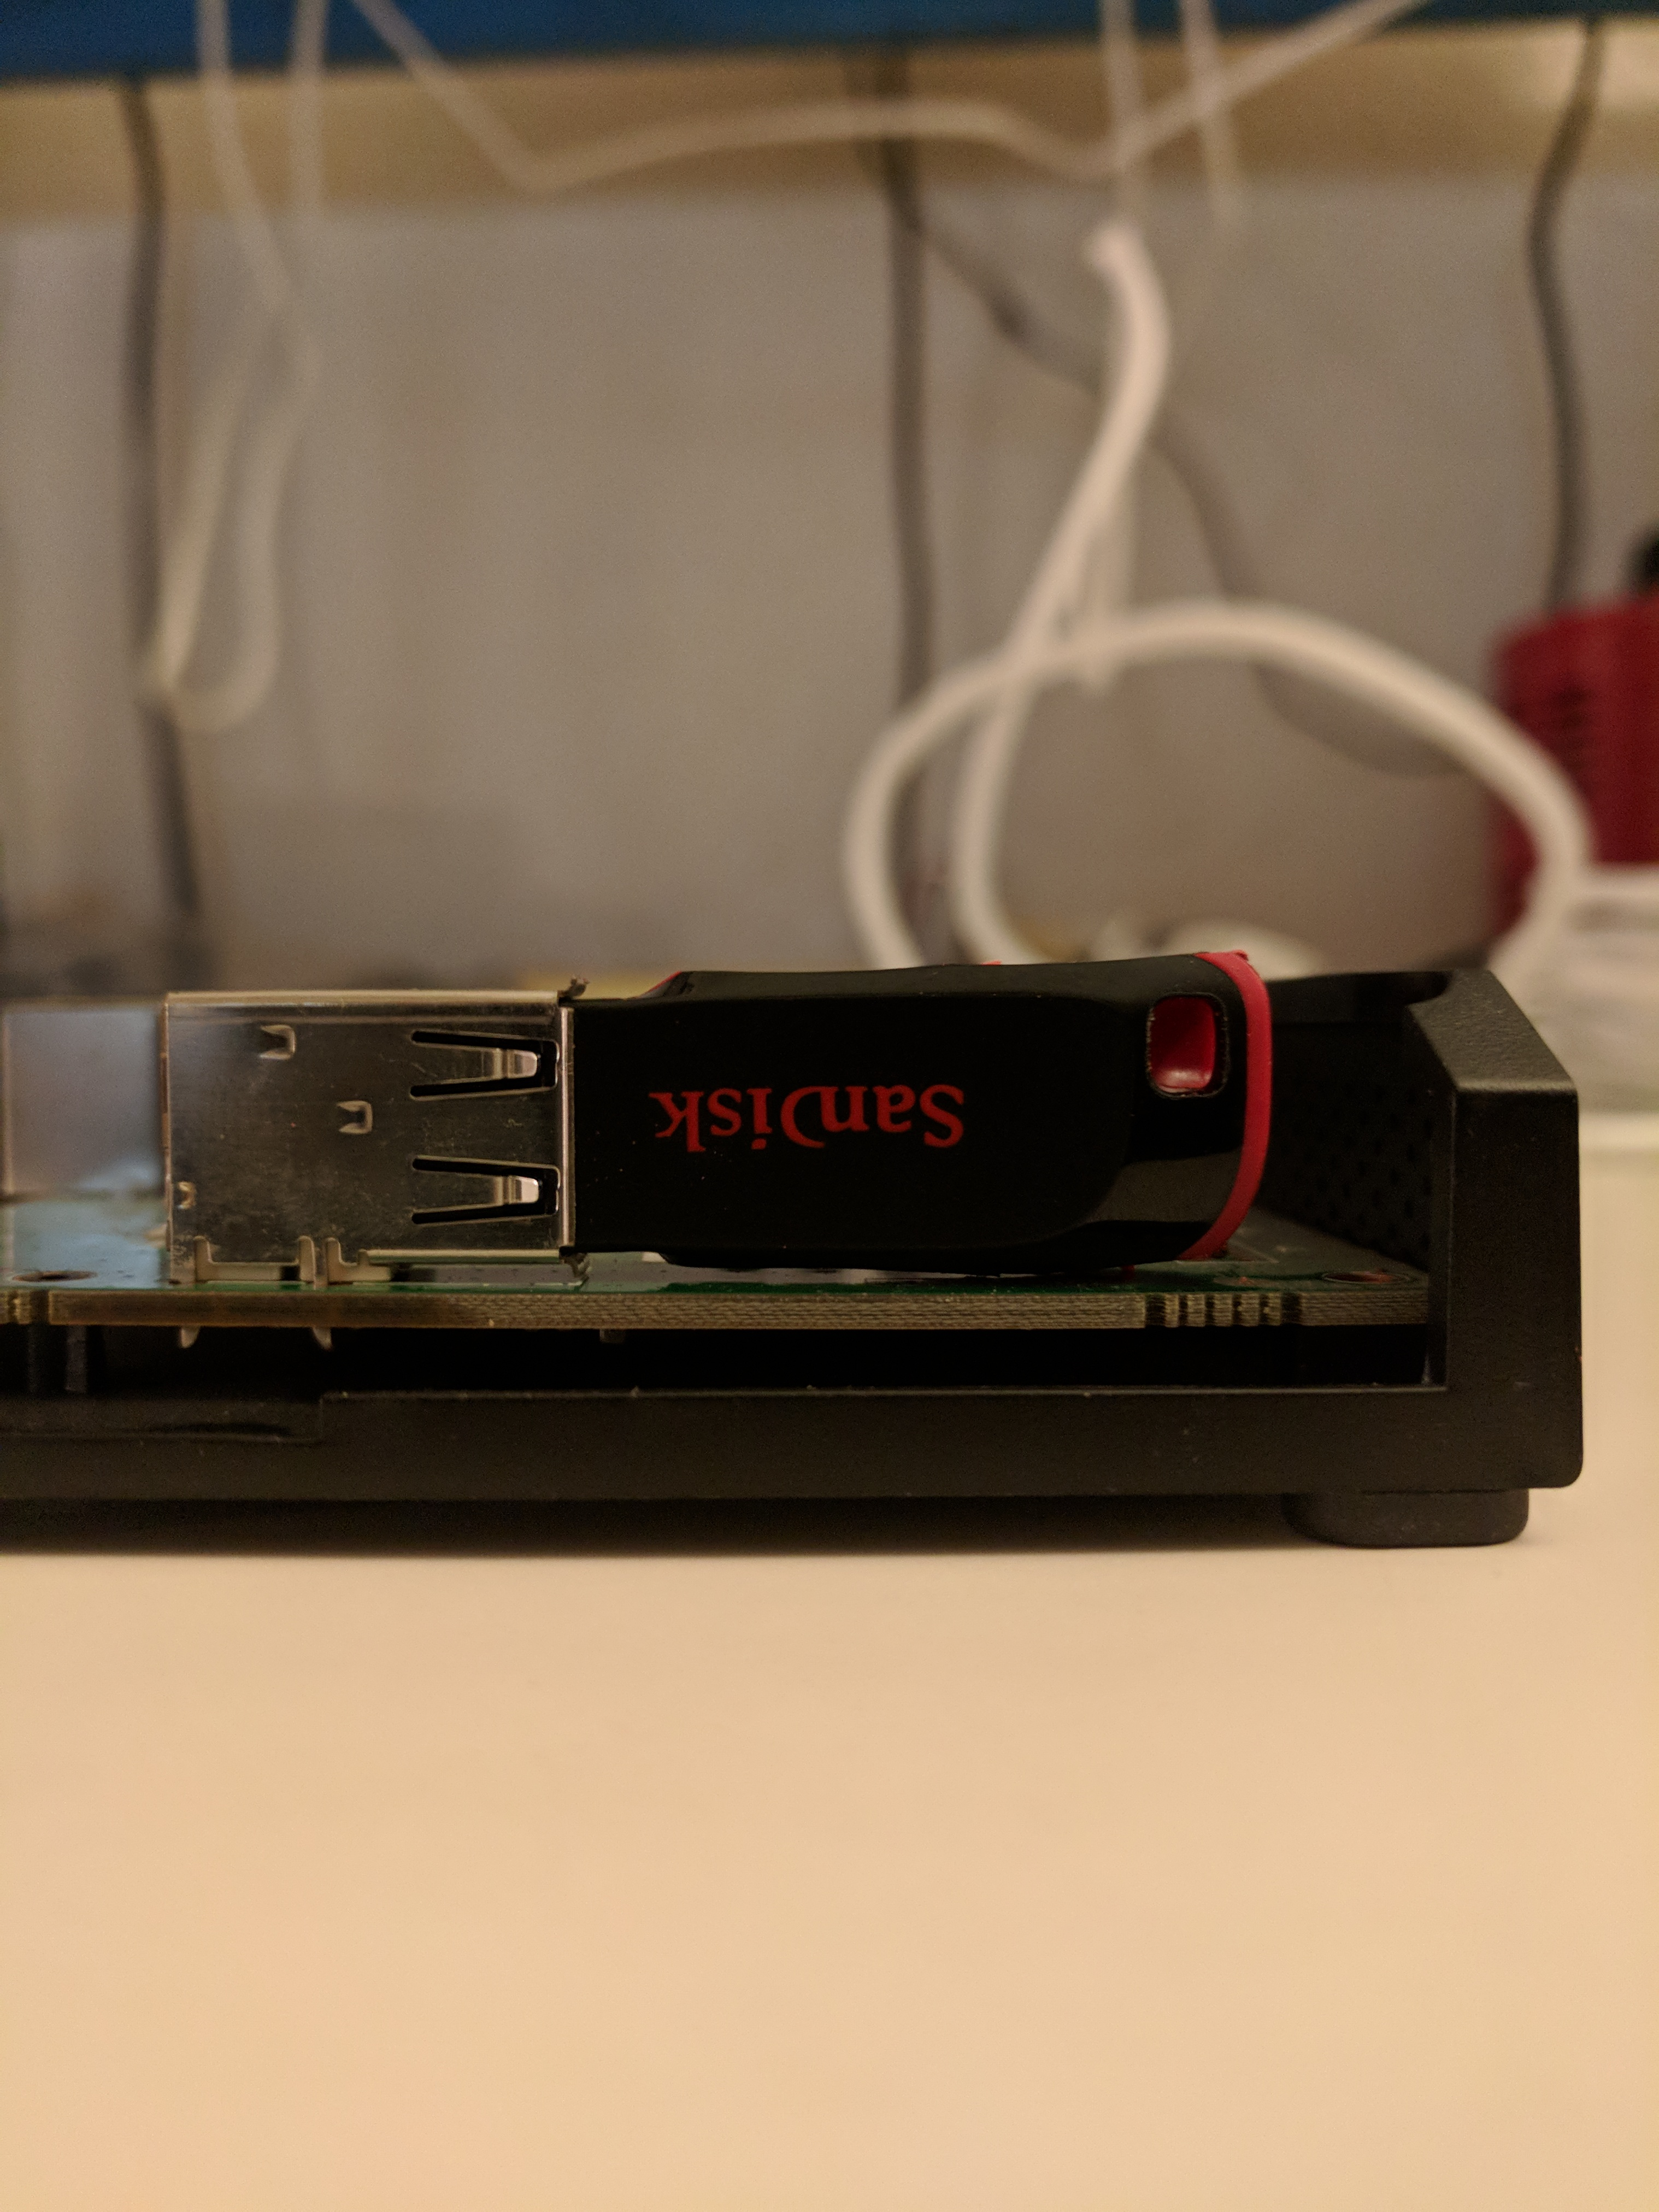 Sandisk Cruzer Blade 8GB USB thumb drive with case ground down installed in Ubiquity EdgeRouter Lite.  The thumb drive barely fits vertically in the EdgeRouter case.